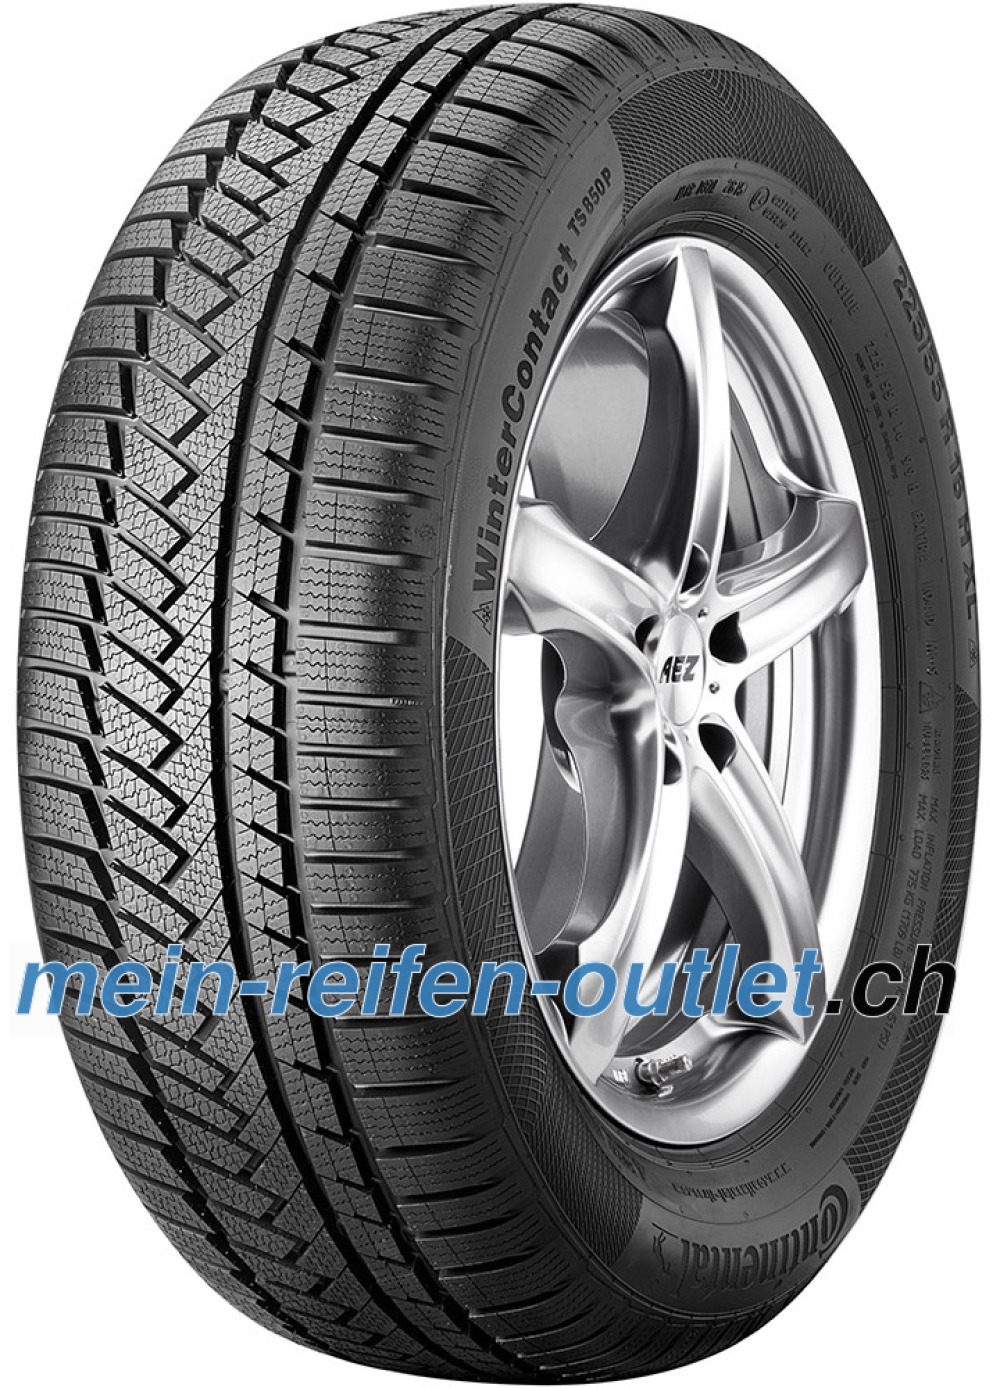 Continental WinterContact TS 850P ( 215/50 R18 92V mit Felgenrippe, SUV )